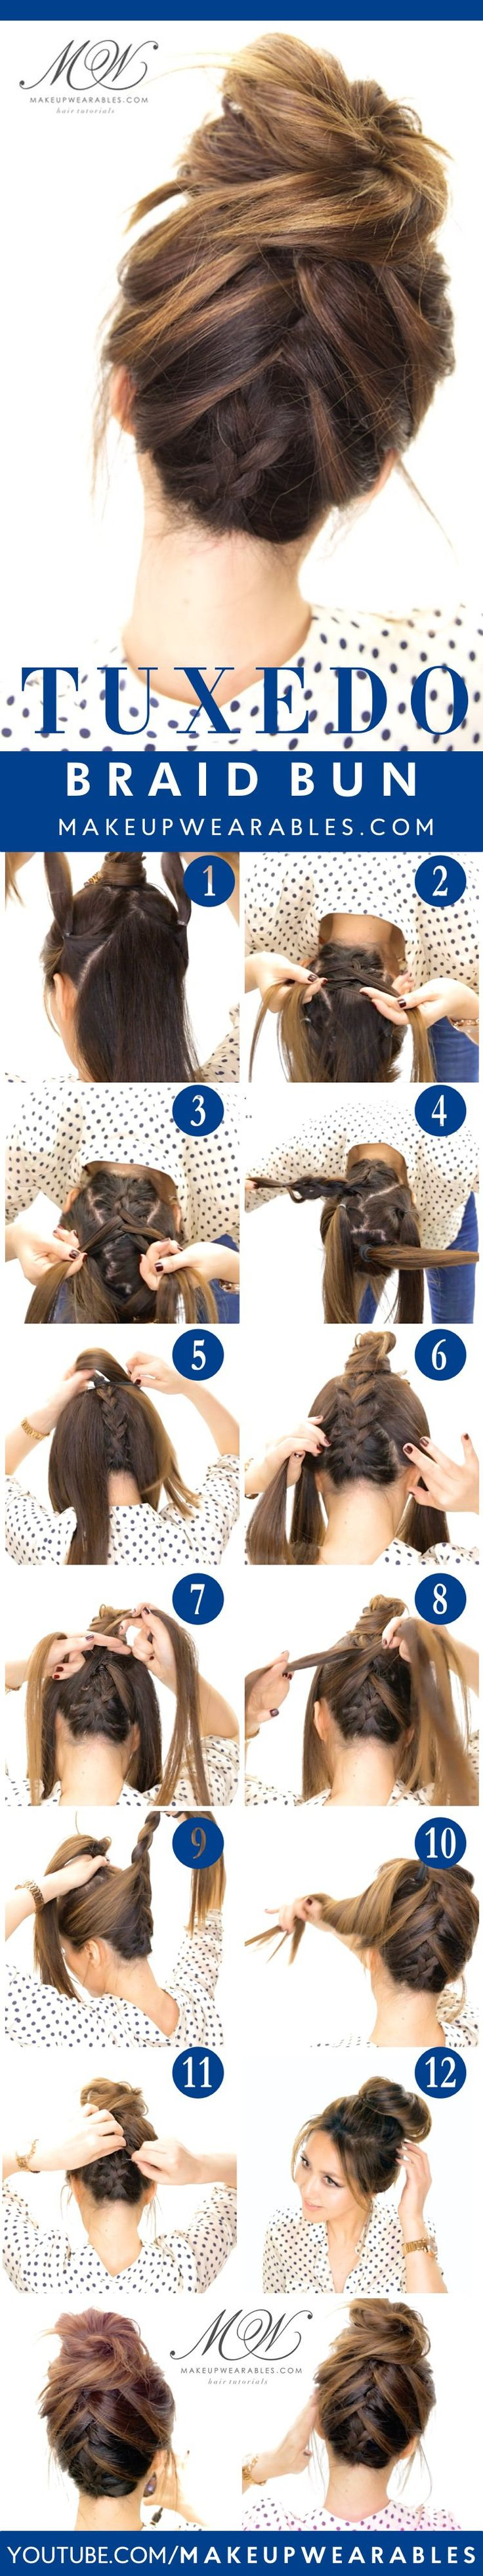 Tuxedo Braid Bun Tutorial 5 Messy Updos for Long Hair, check it out at makeuptut...